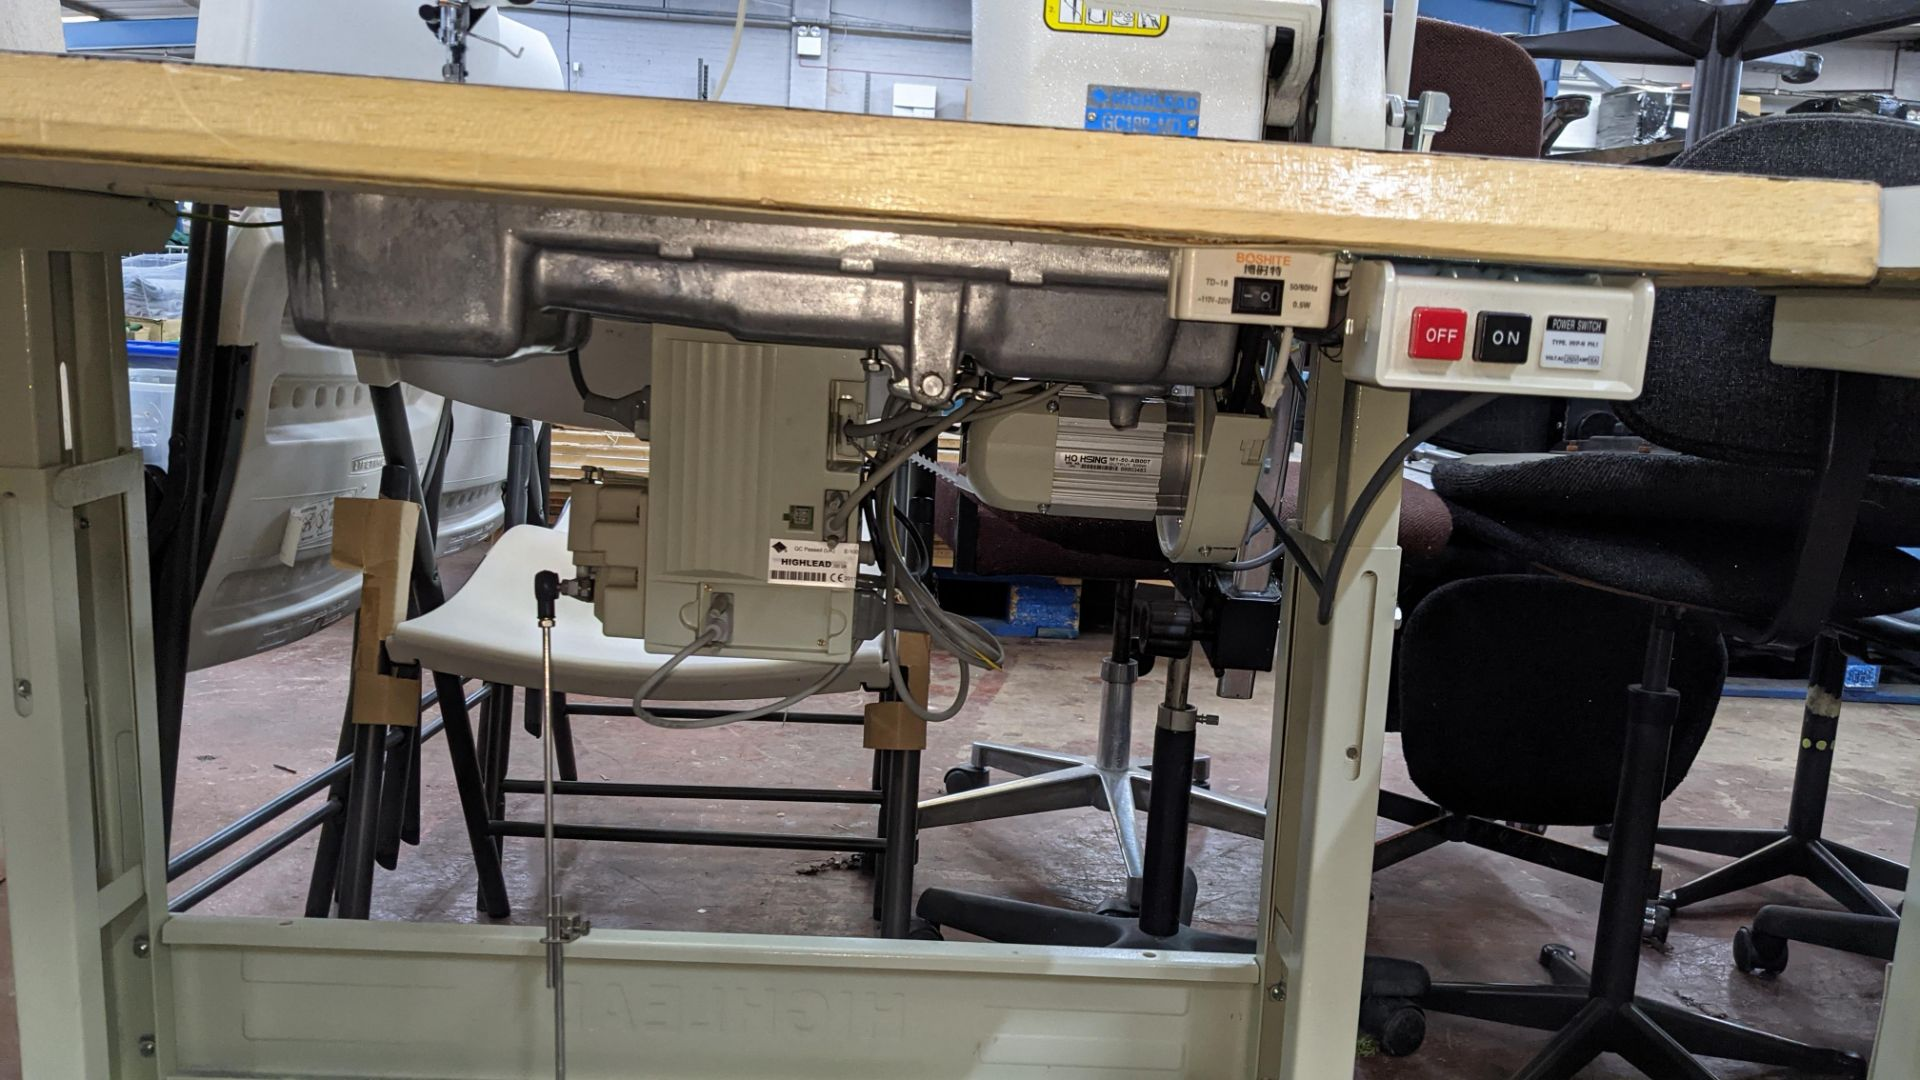 Highlead model GC188-MD sewing machine with model F-10 digital controller - Image 16 of 16